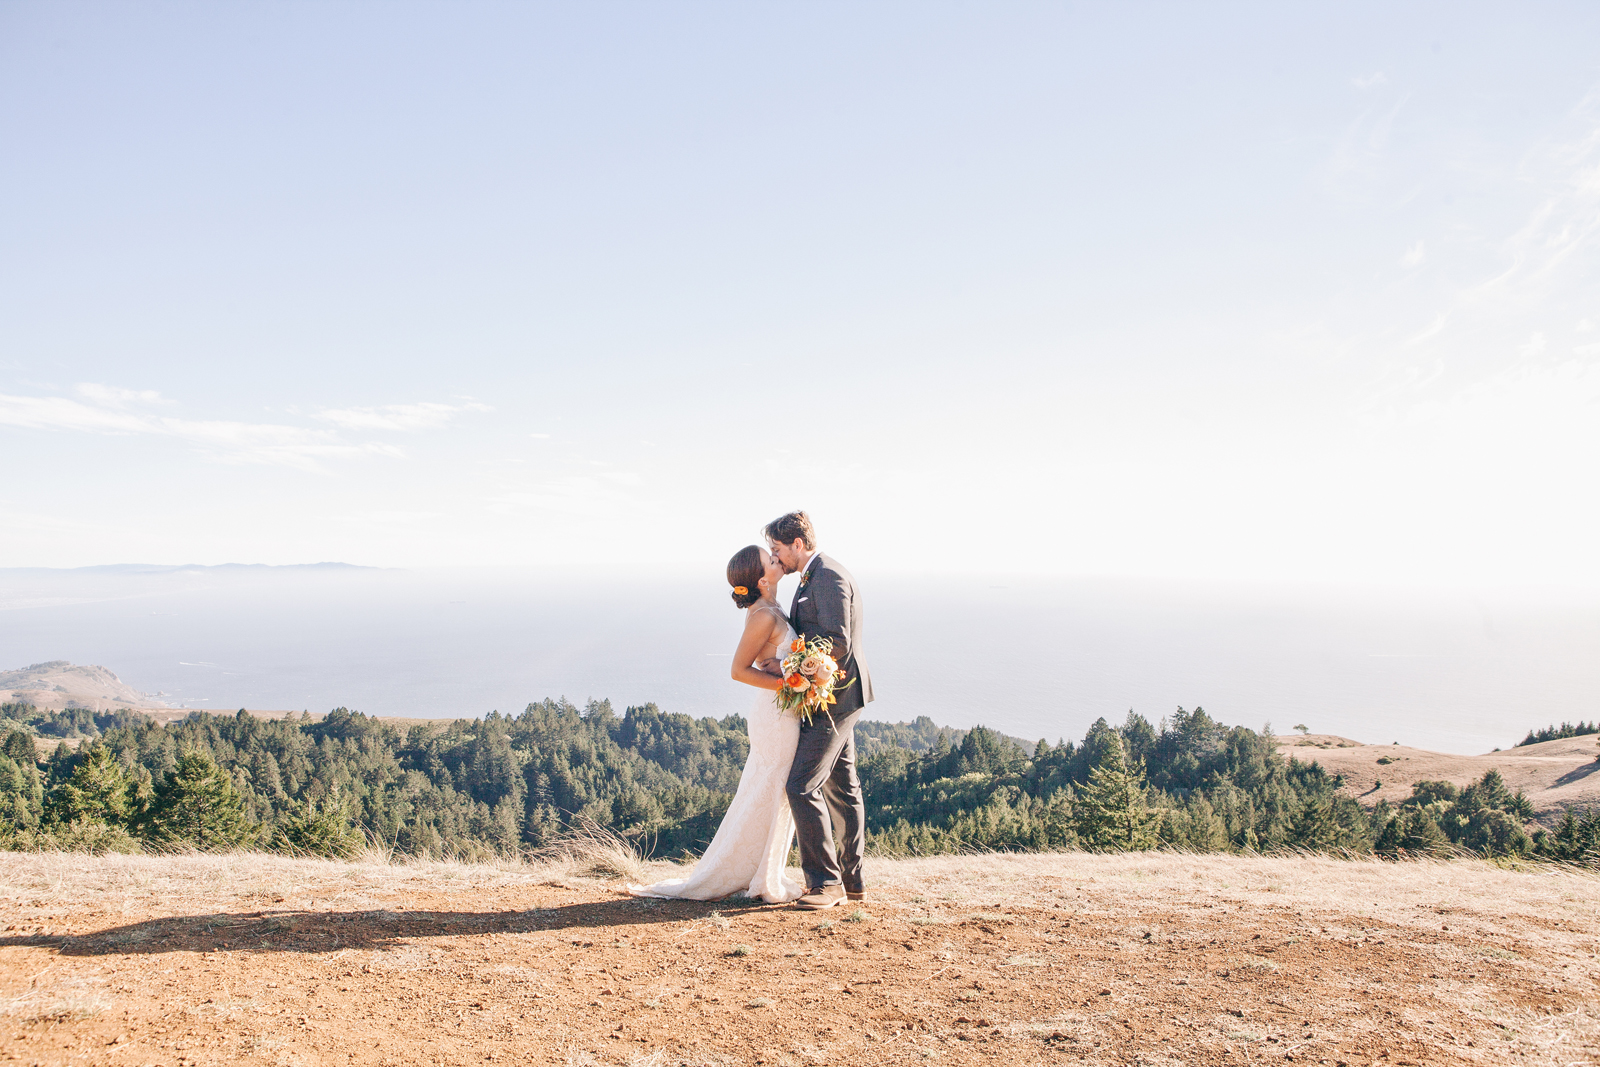 mt_tam_wedding_photography_marin_zac_katie_ebony_siovhan_bokeh_photography_37.jpg